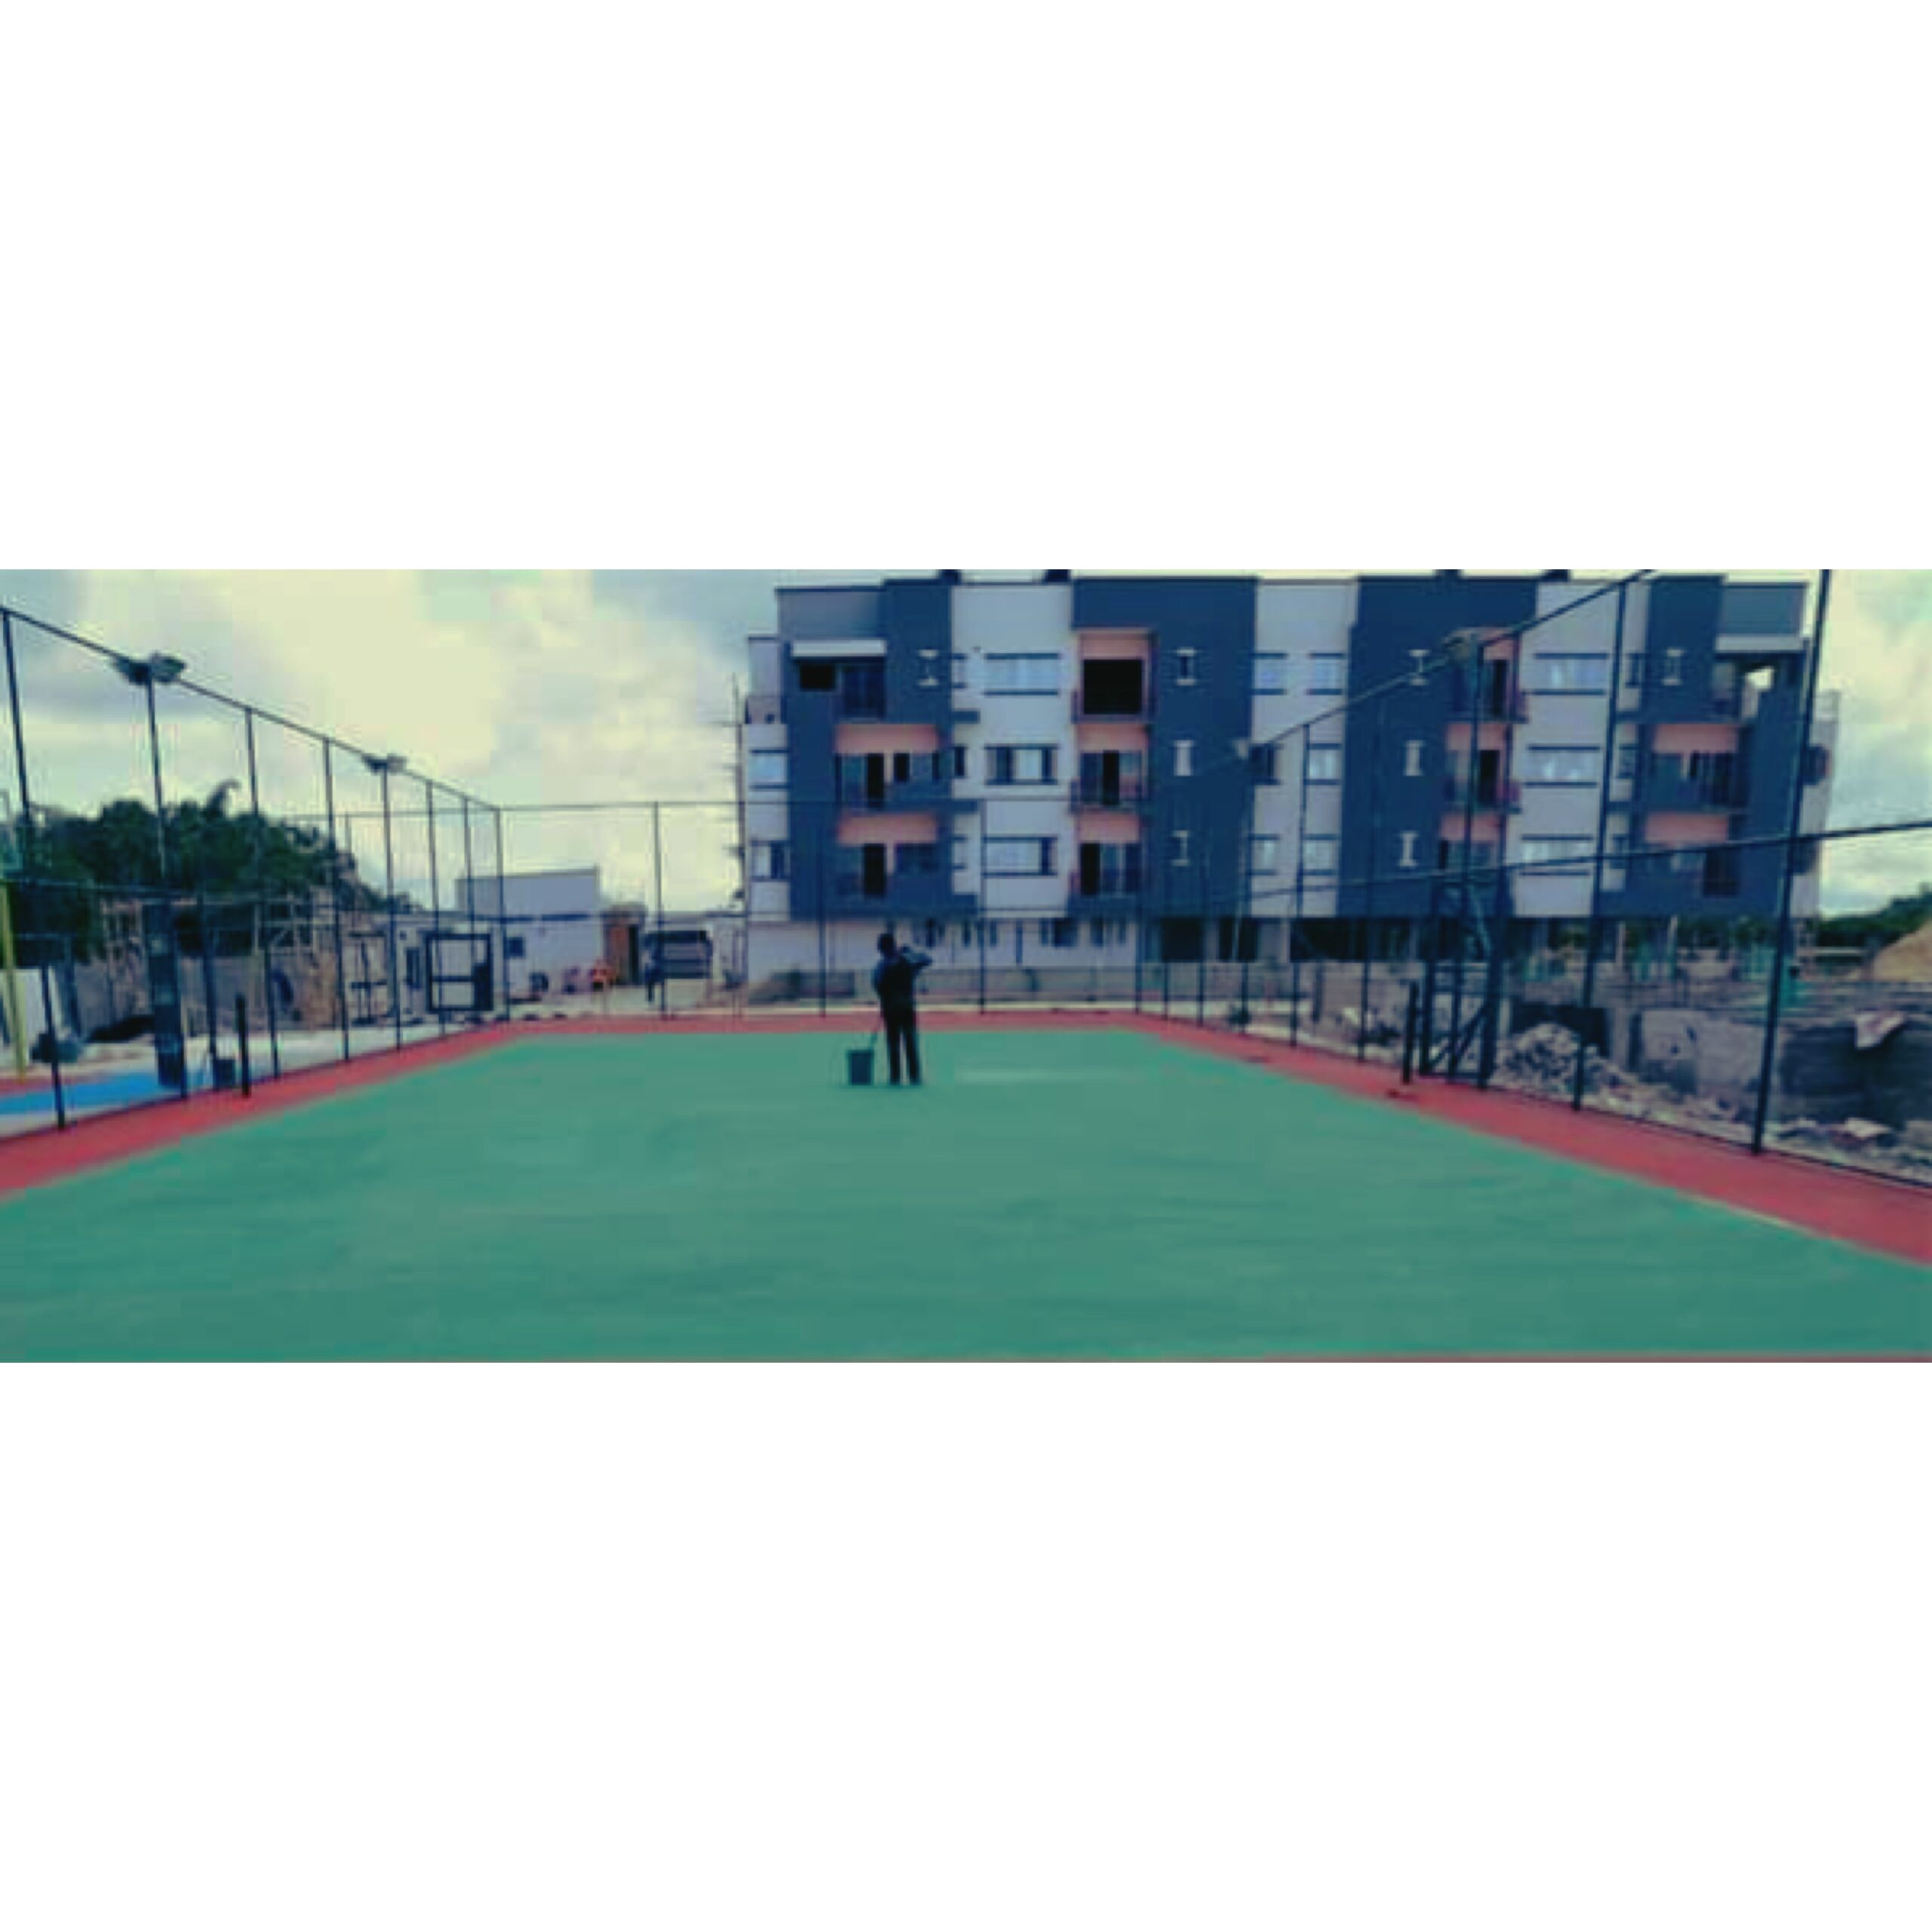 1 BED APARTMENTS WITH BASKETBALL COURT